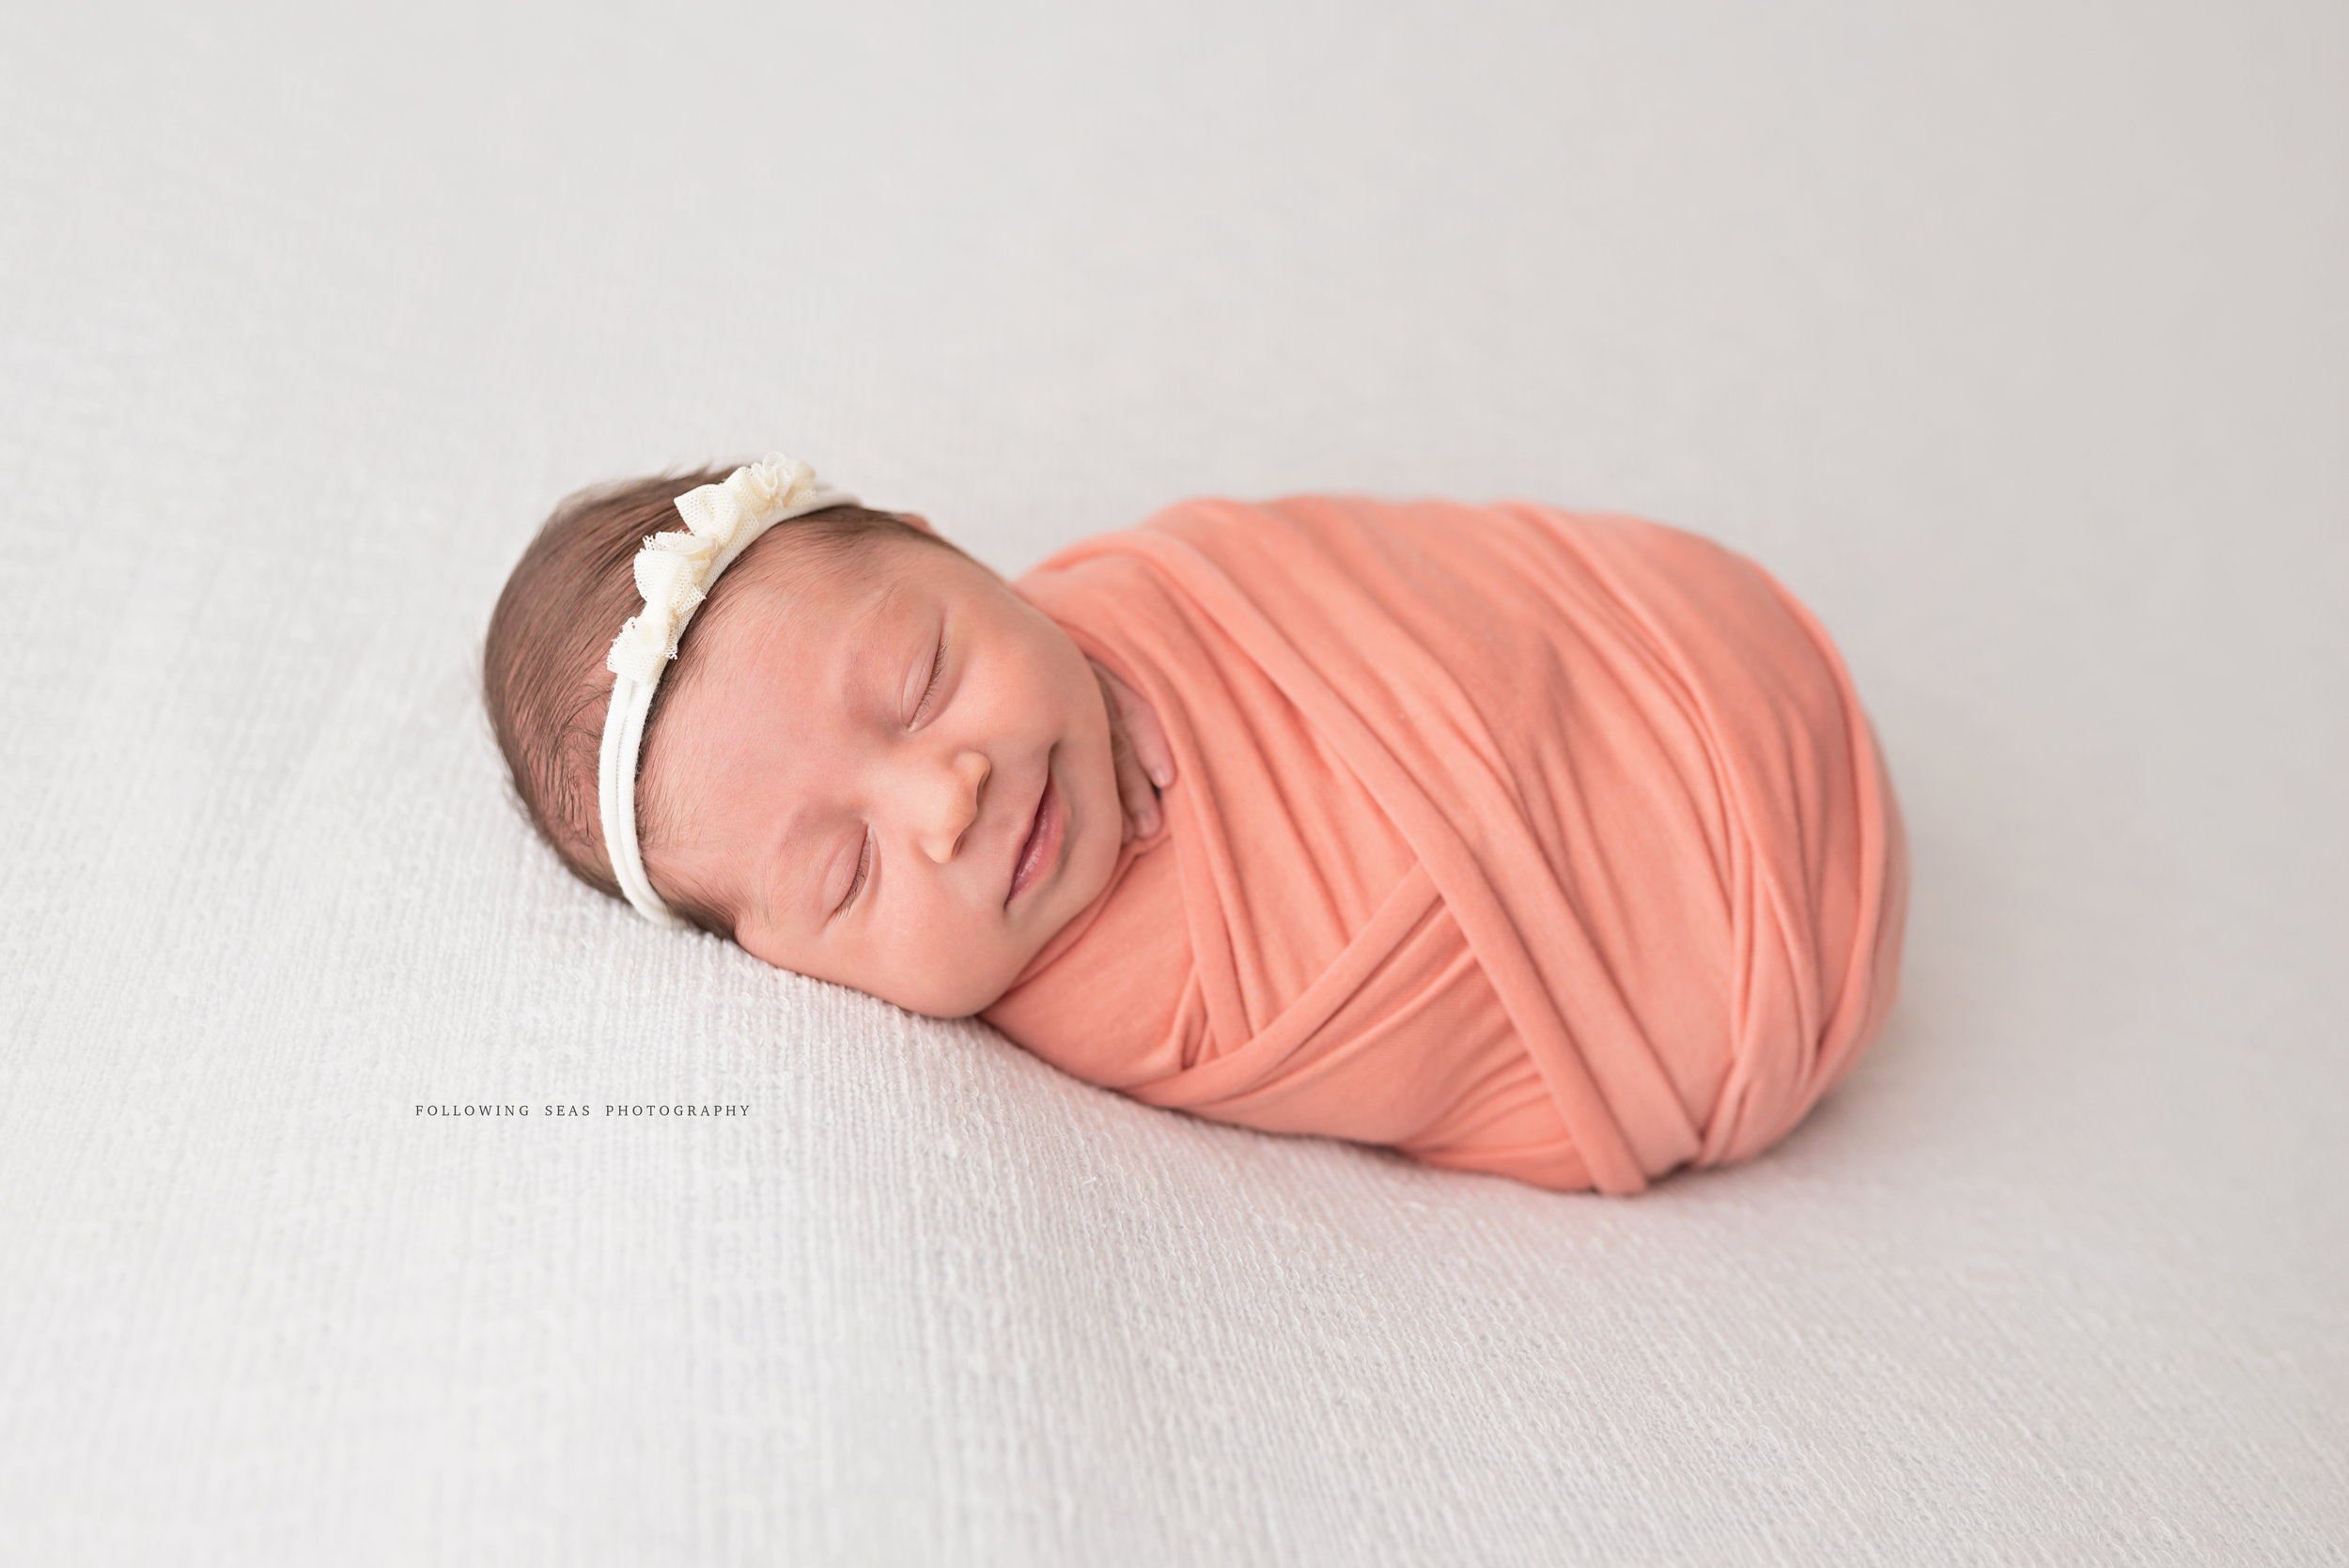 Charleston-Newborn-Photographer-Following-Seas-Photography-FSP_7039.jpg